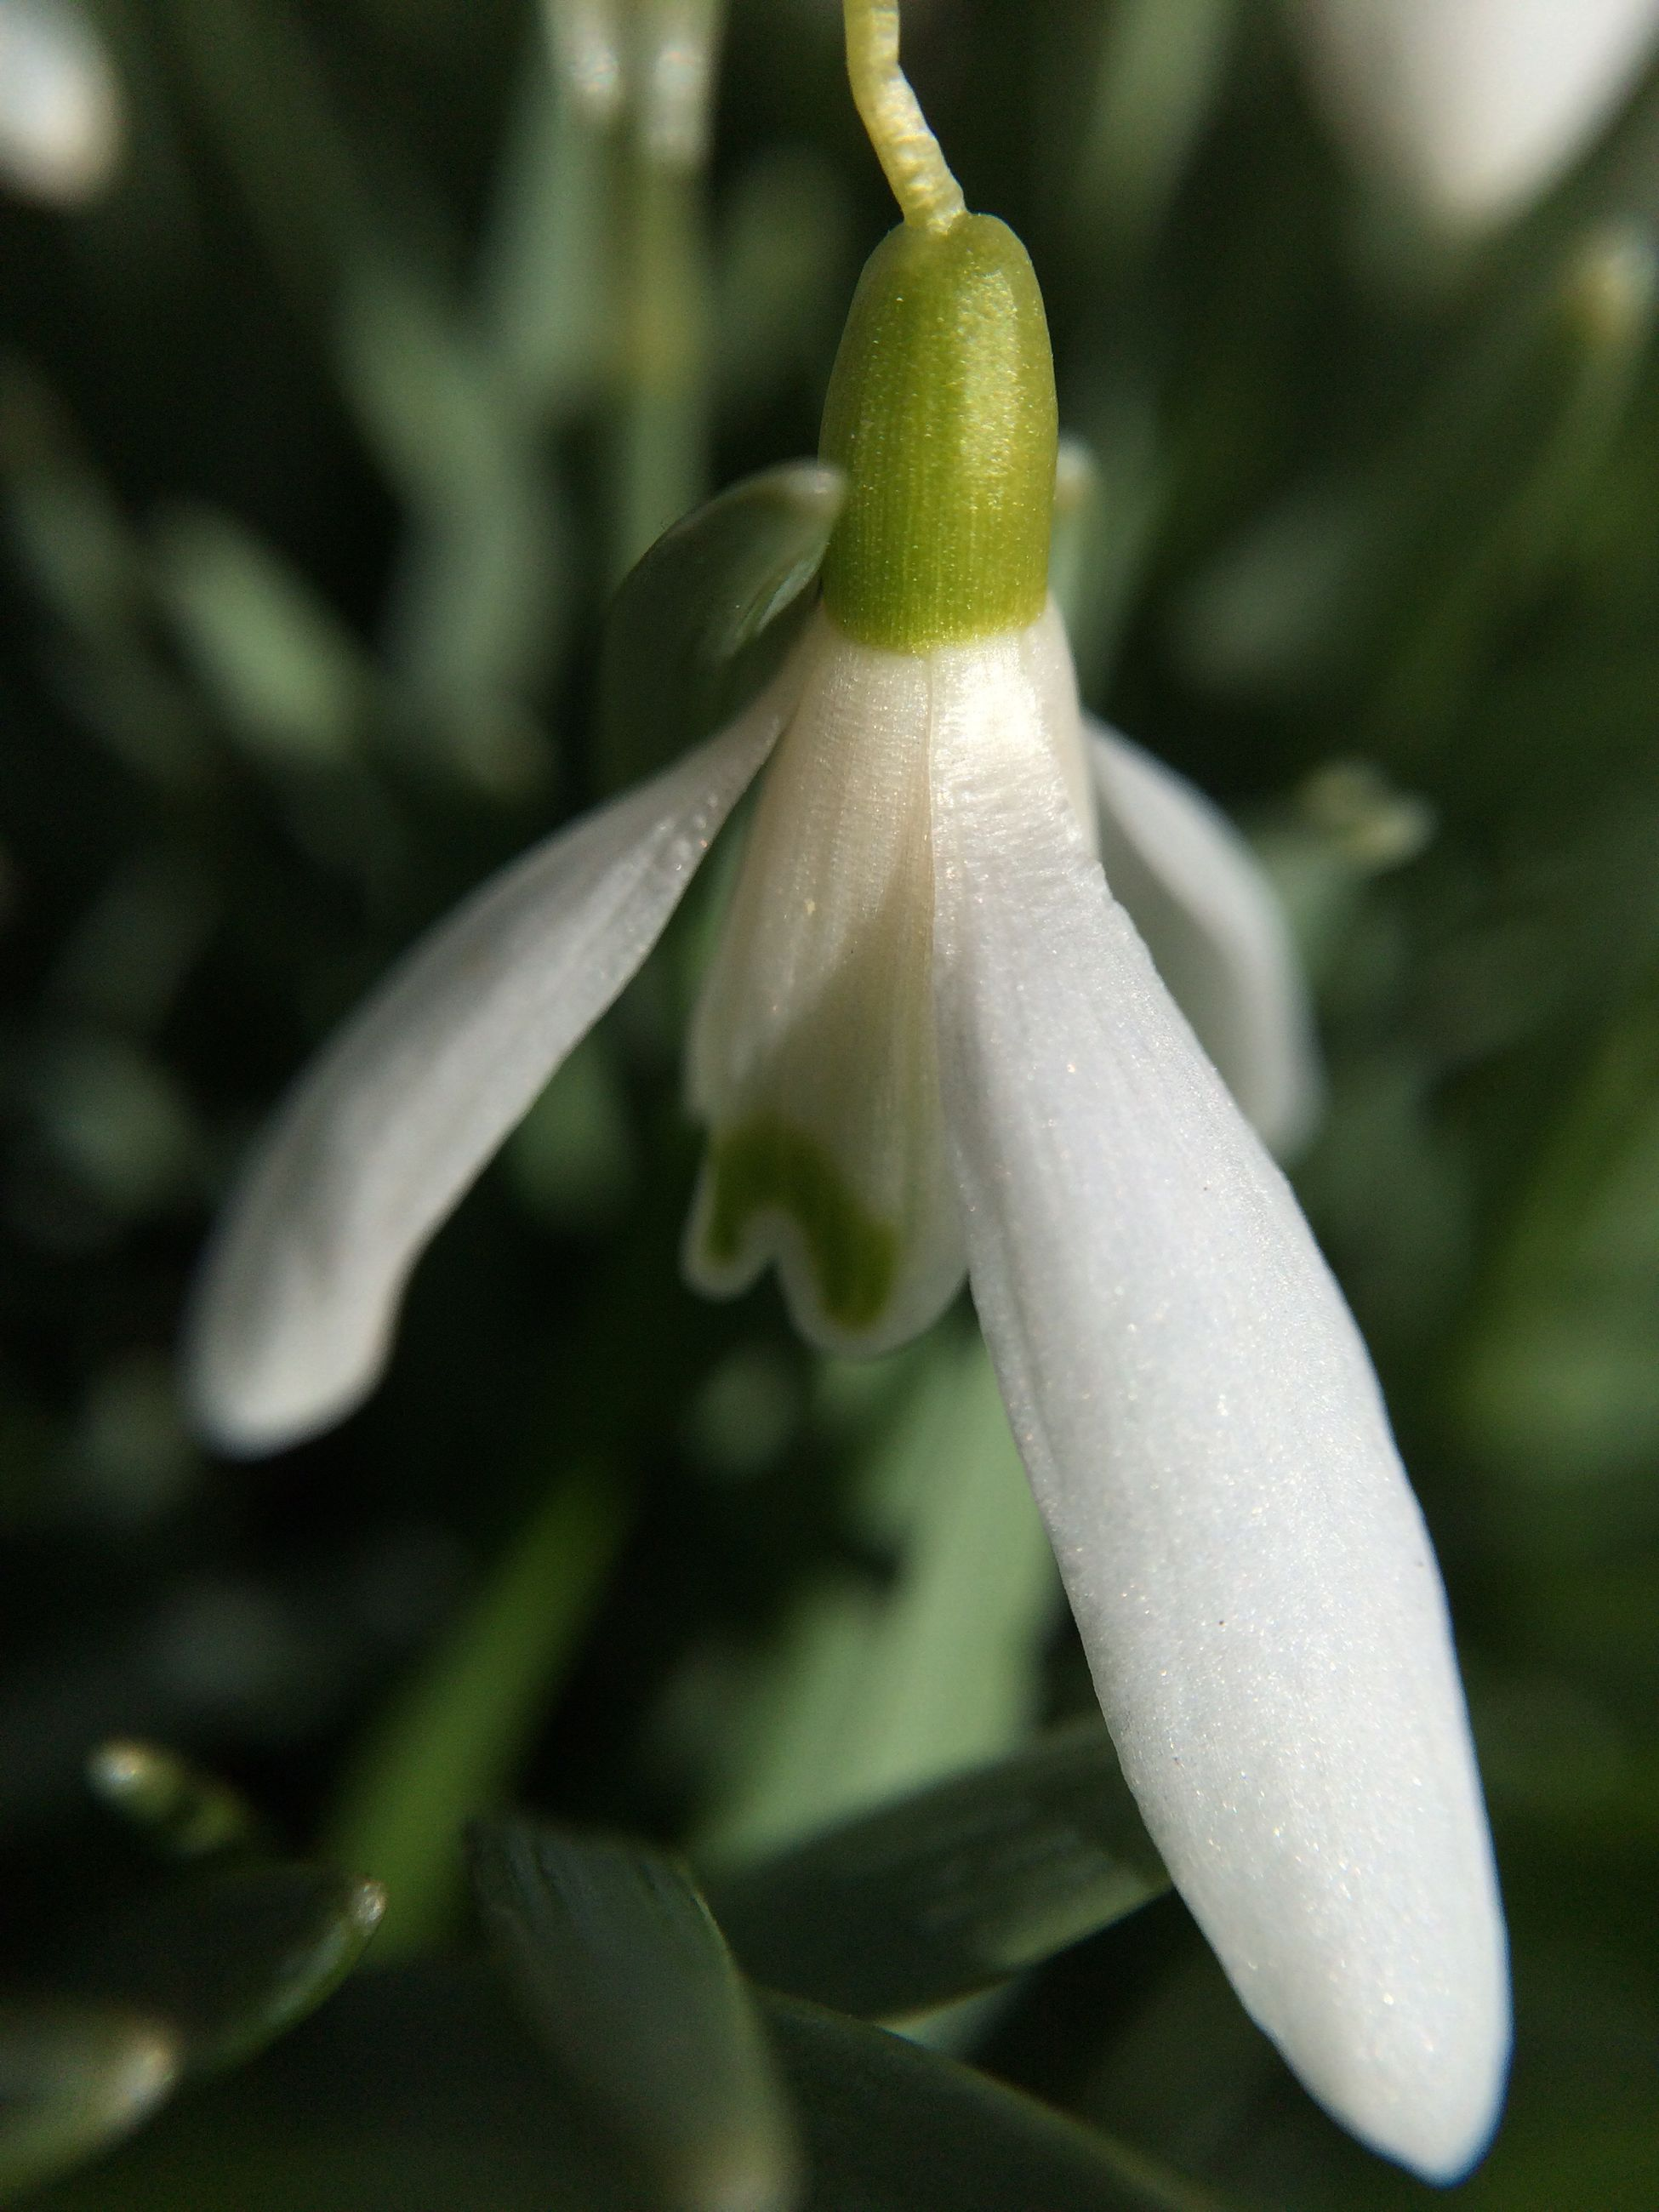 flower, freshness, growth, fragility, close-up, petal, beauty in nature, white color, flower head, nature, focus on foreground, plant, drop, selective focus, blooming, bud, wet, outdoors, white, in bloom